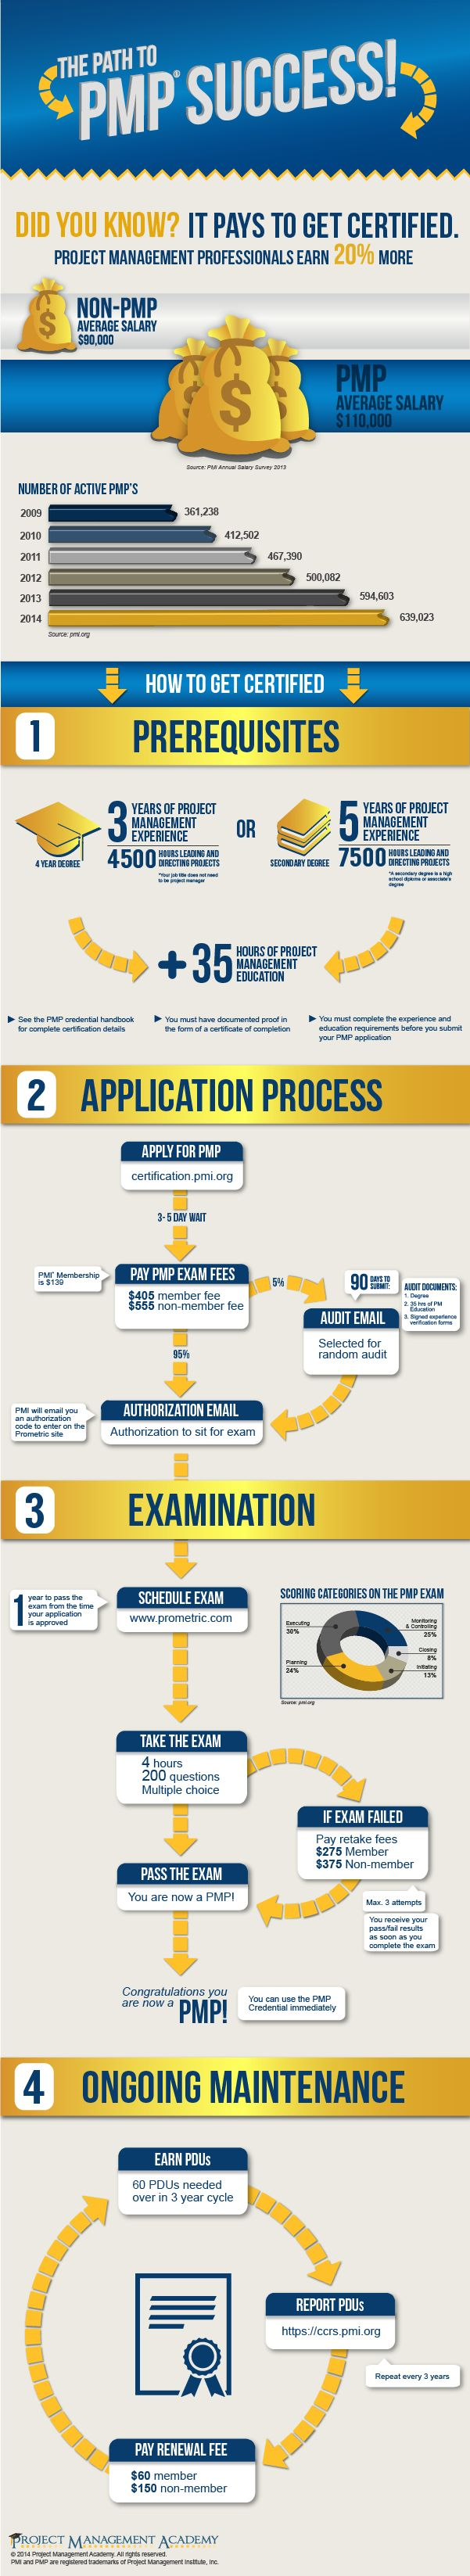 PMP Certification Process- Just have to keep my eyes on the prize